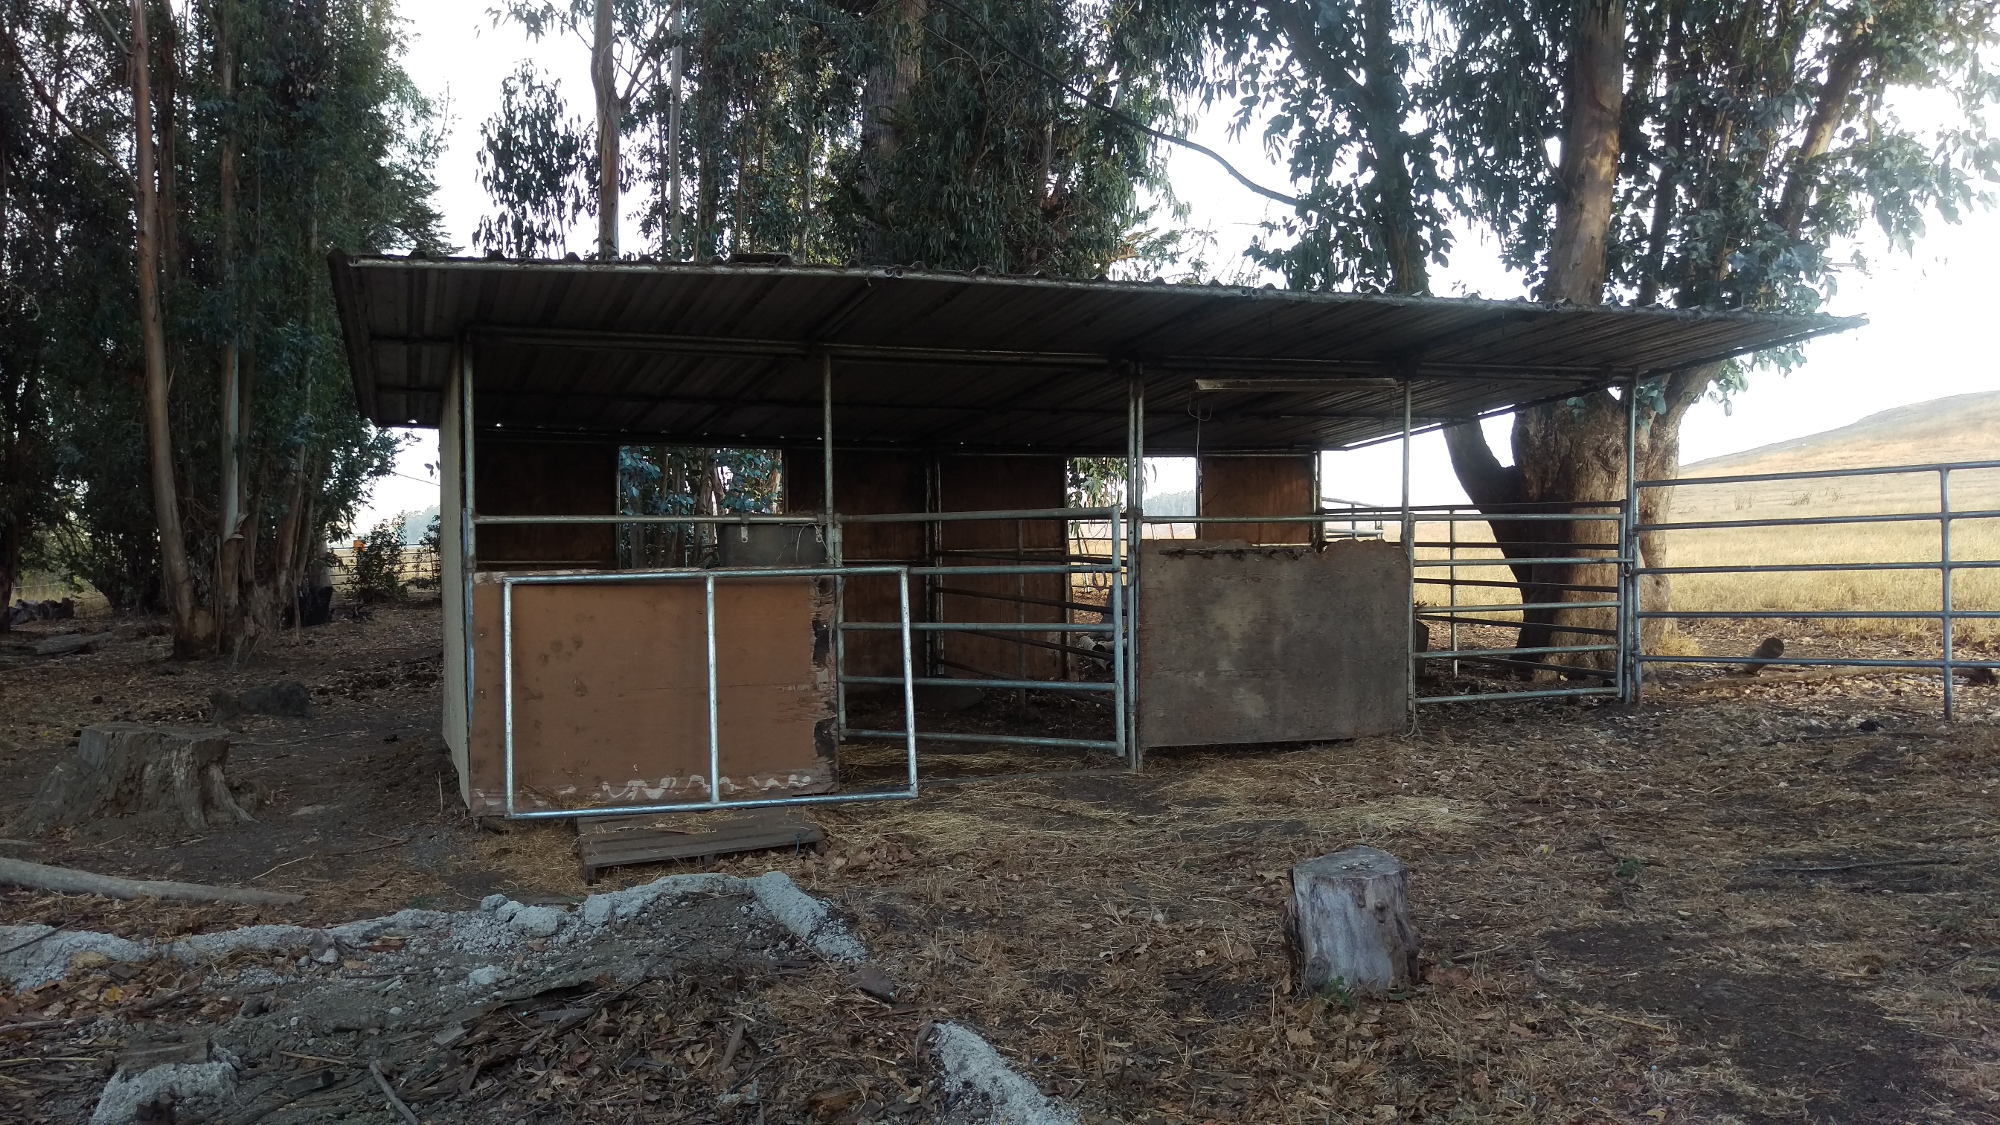 Partially Enclosed Shelter